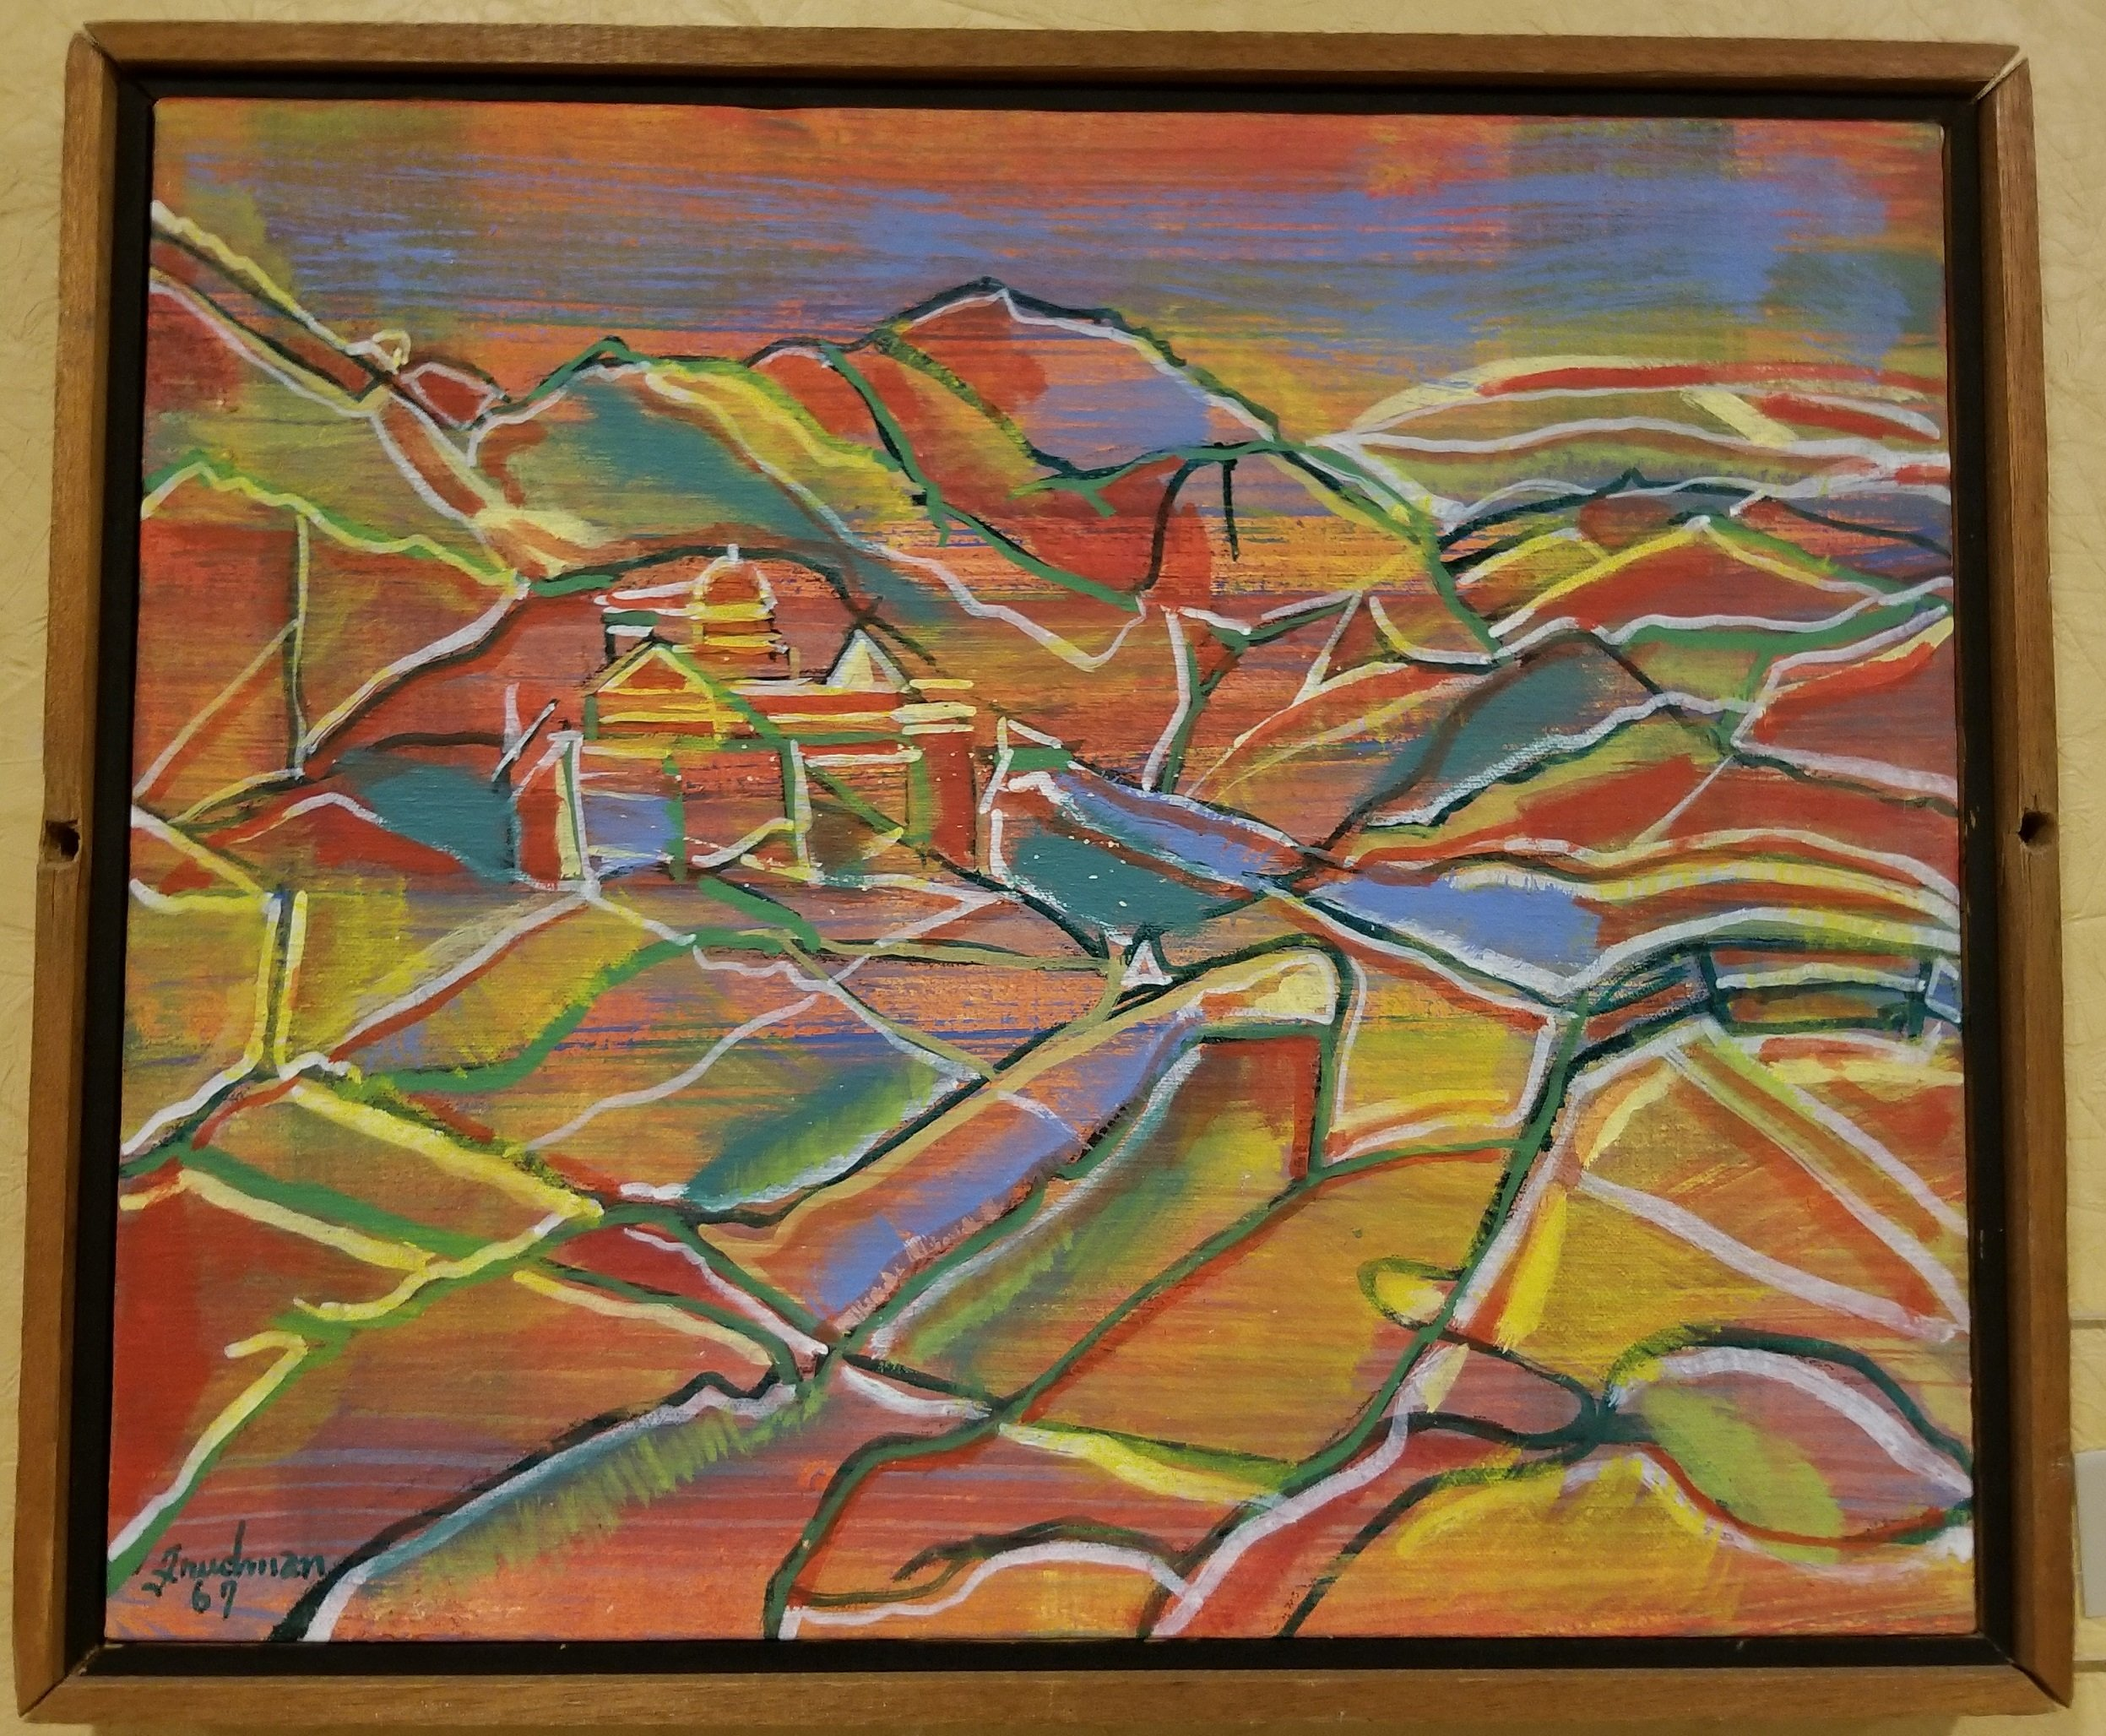 """Humphrey Mine"" by Ben Freedman. Acrylic painting on canvas. On display on the second floor of the Mountainlair down the hall to the right after coming up the main stairs. In the permanent Mountainlair Collection."